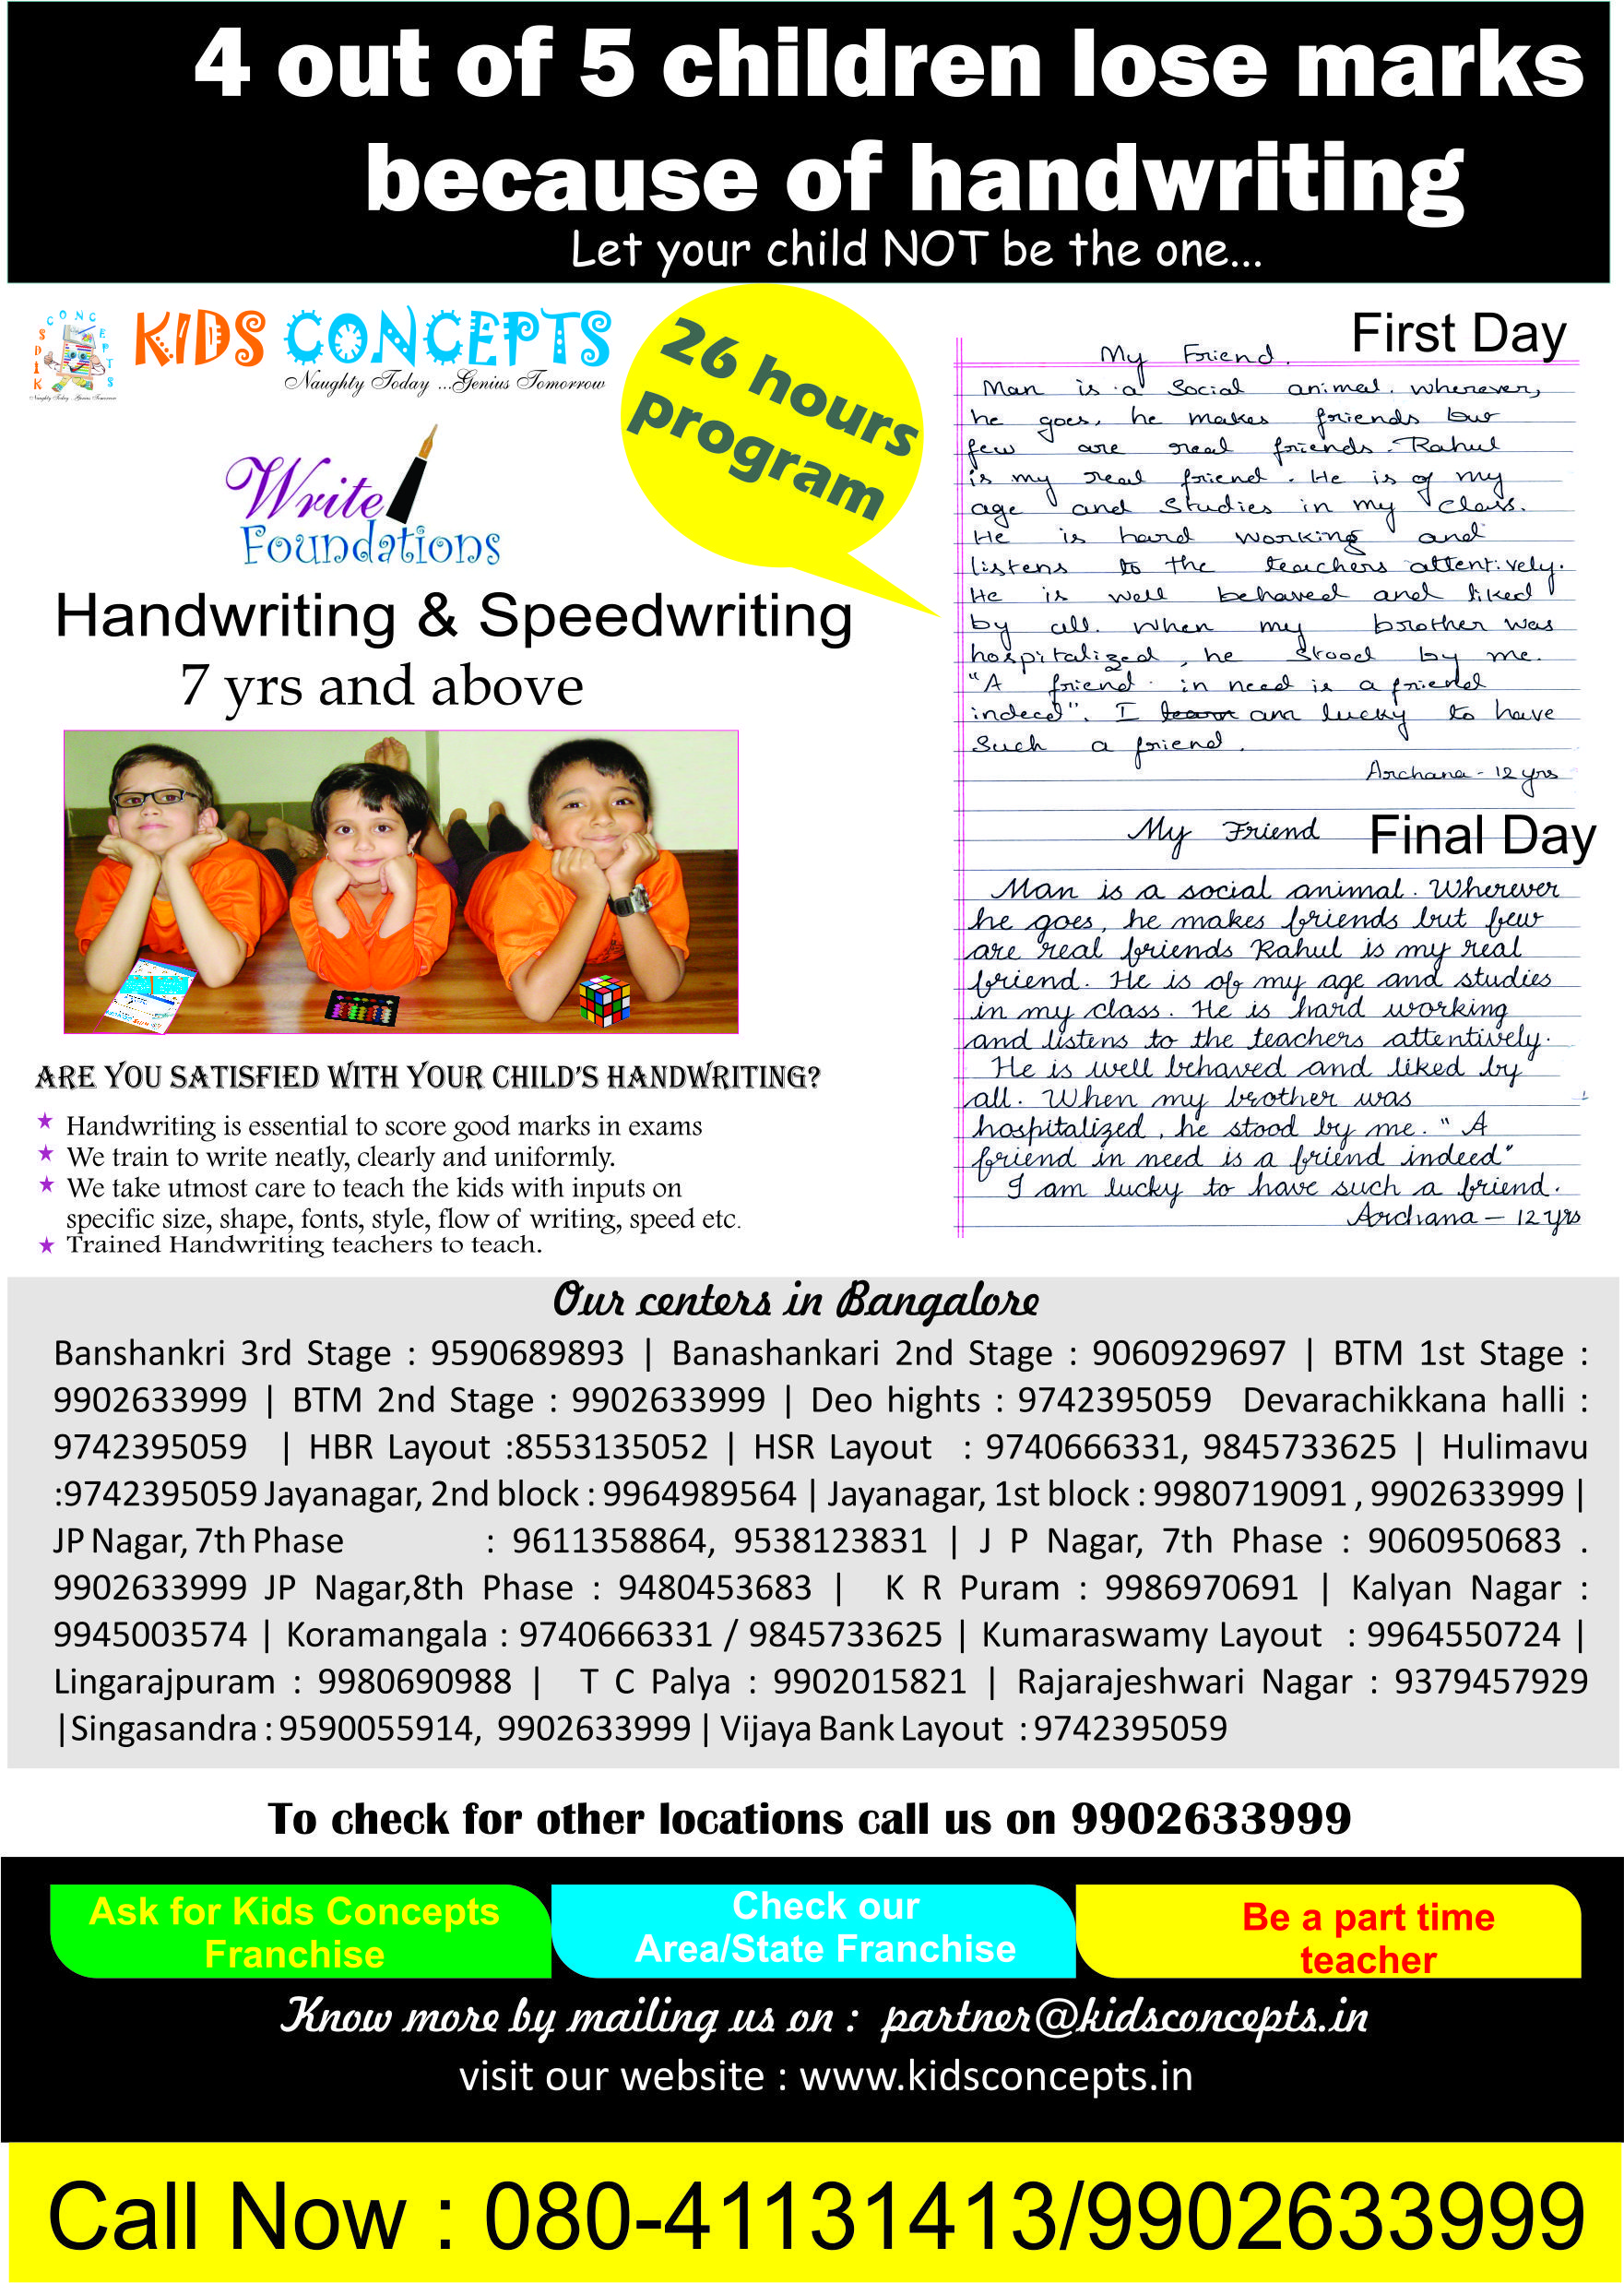 Pamphlet2 Handwriting Classes Handwriting Template Kids Education